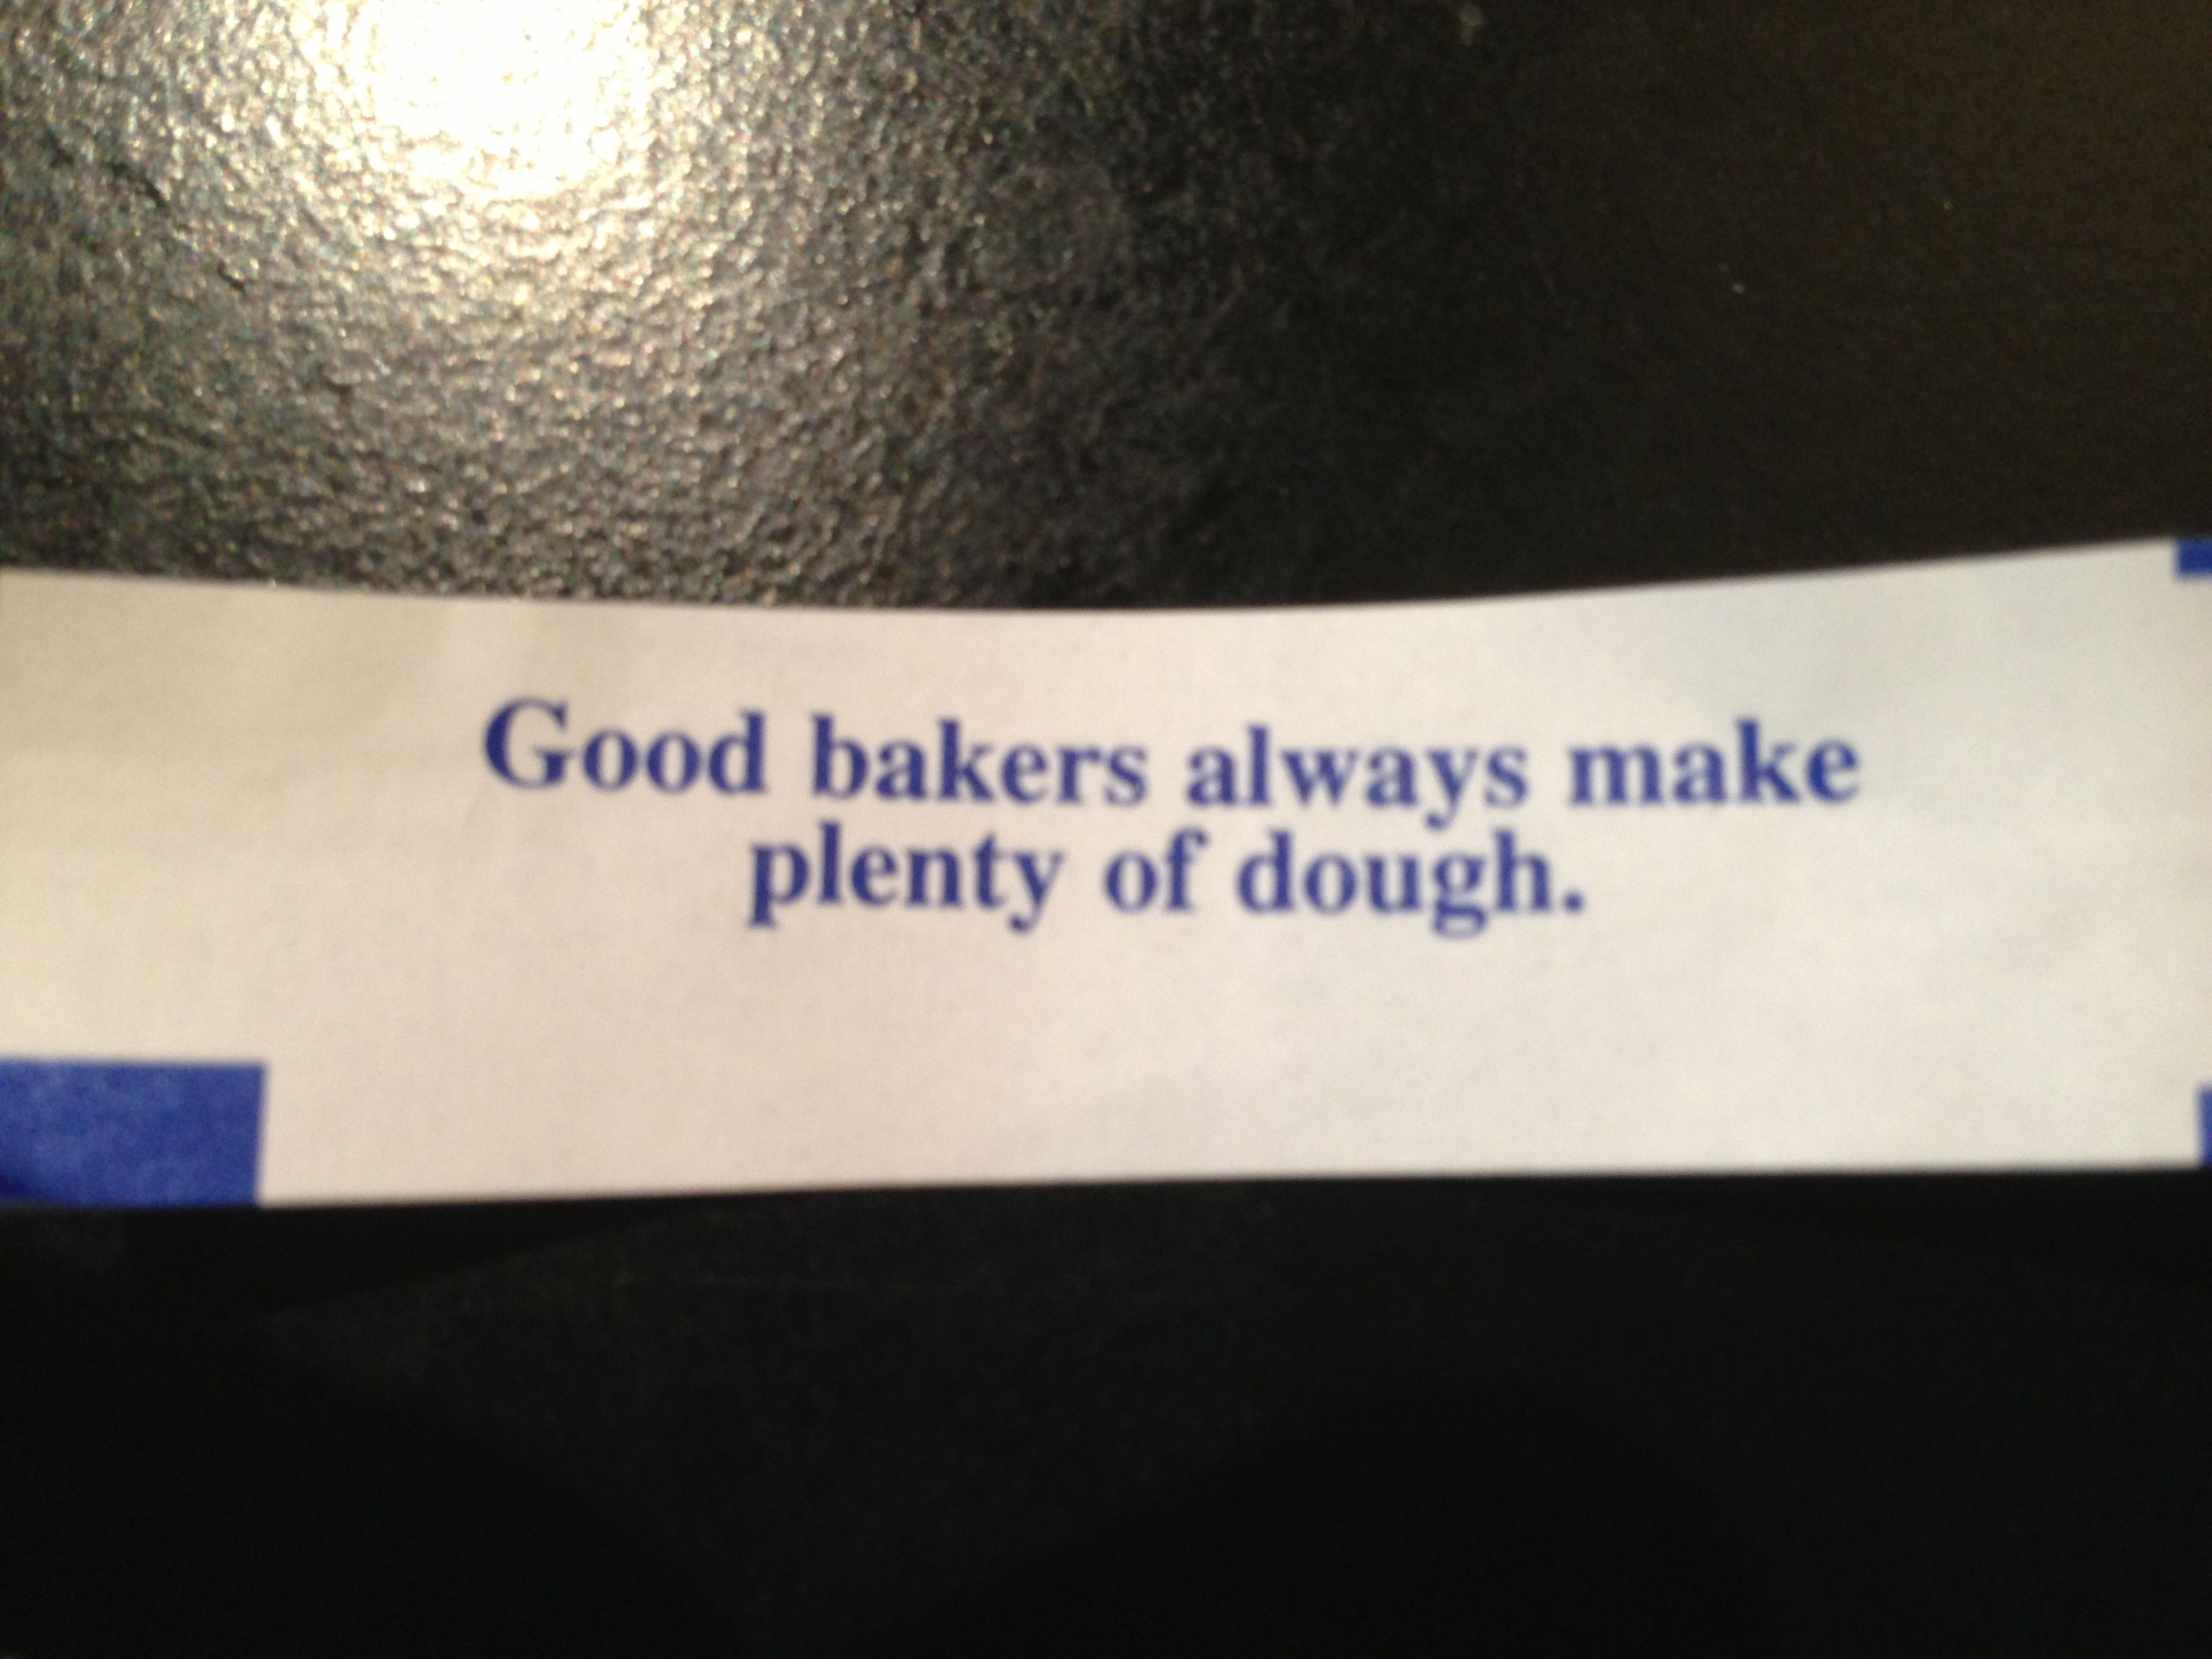 Most perfect fortune ever!